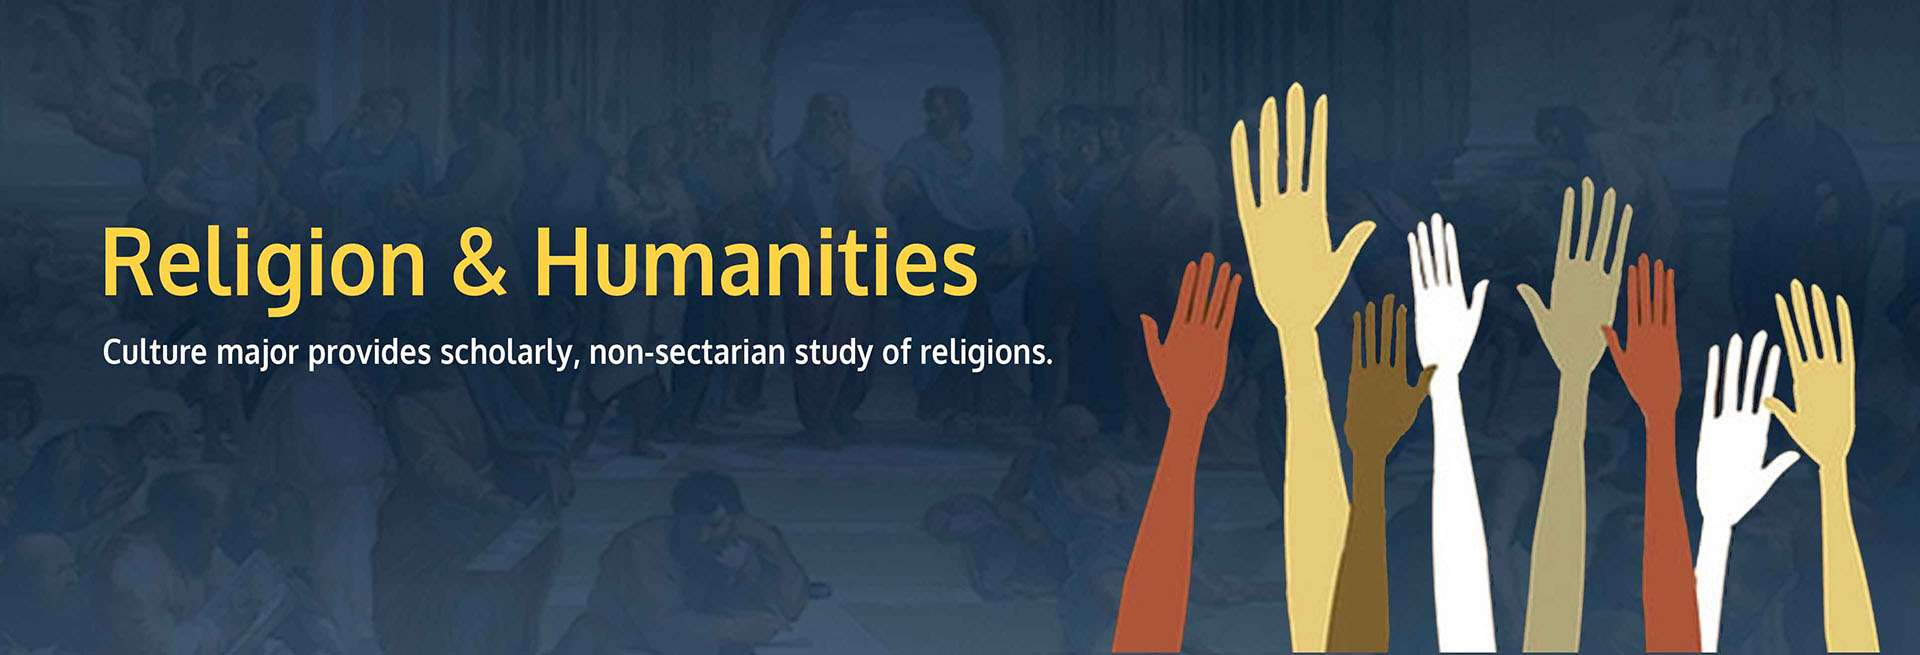 Religion and Humanities